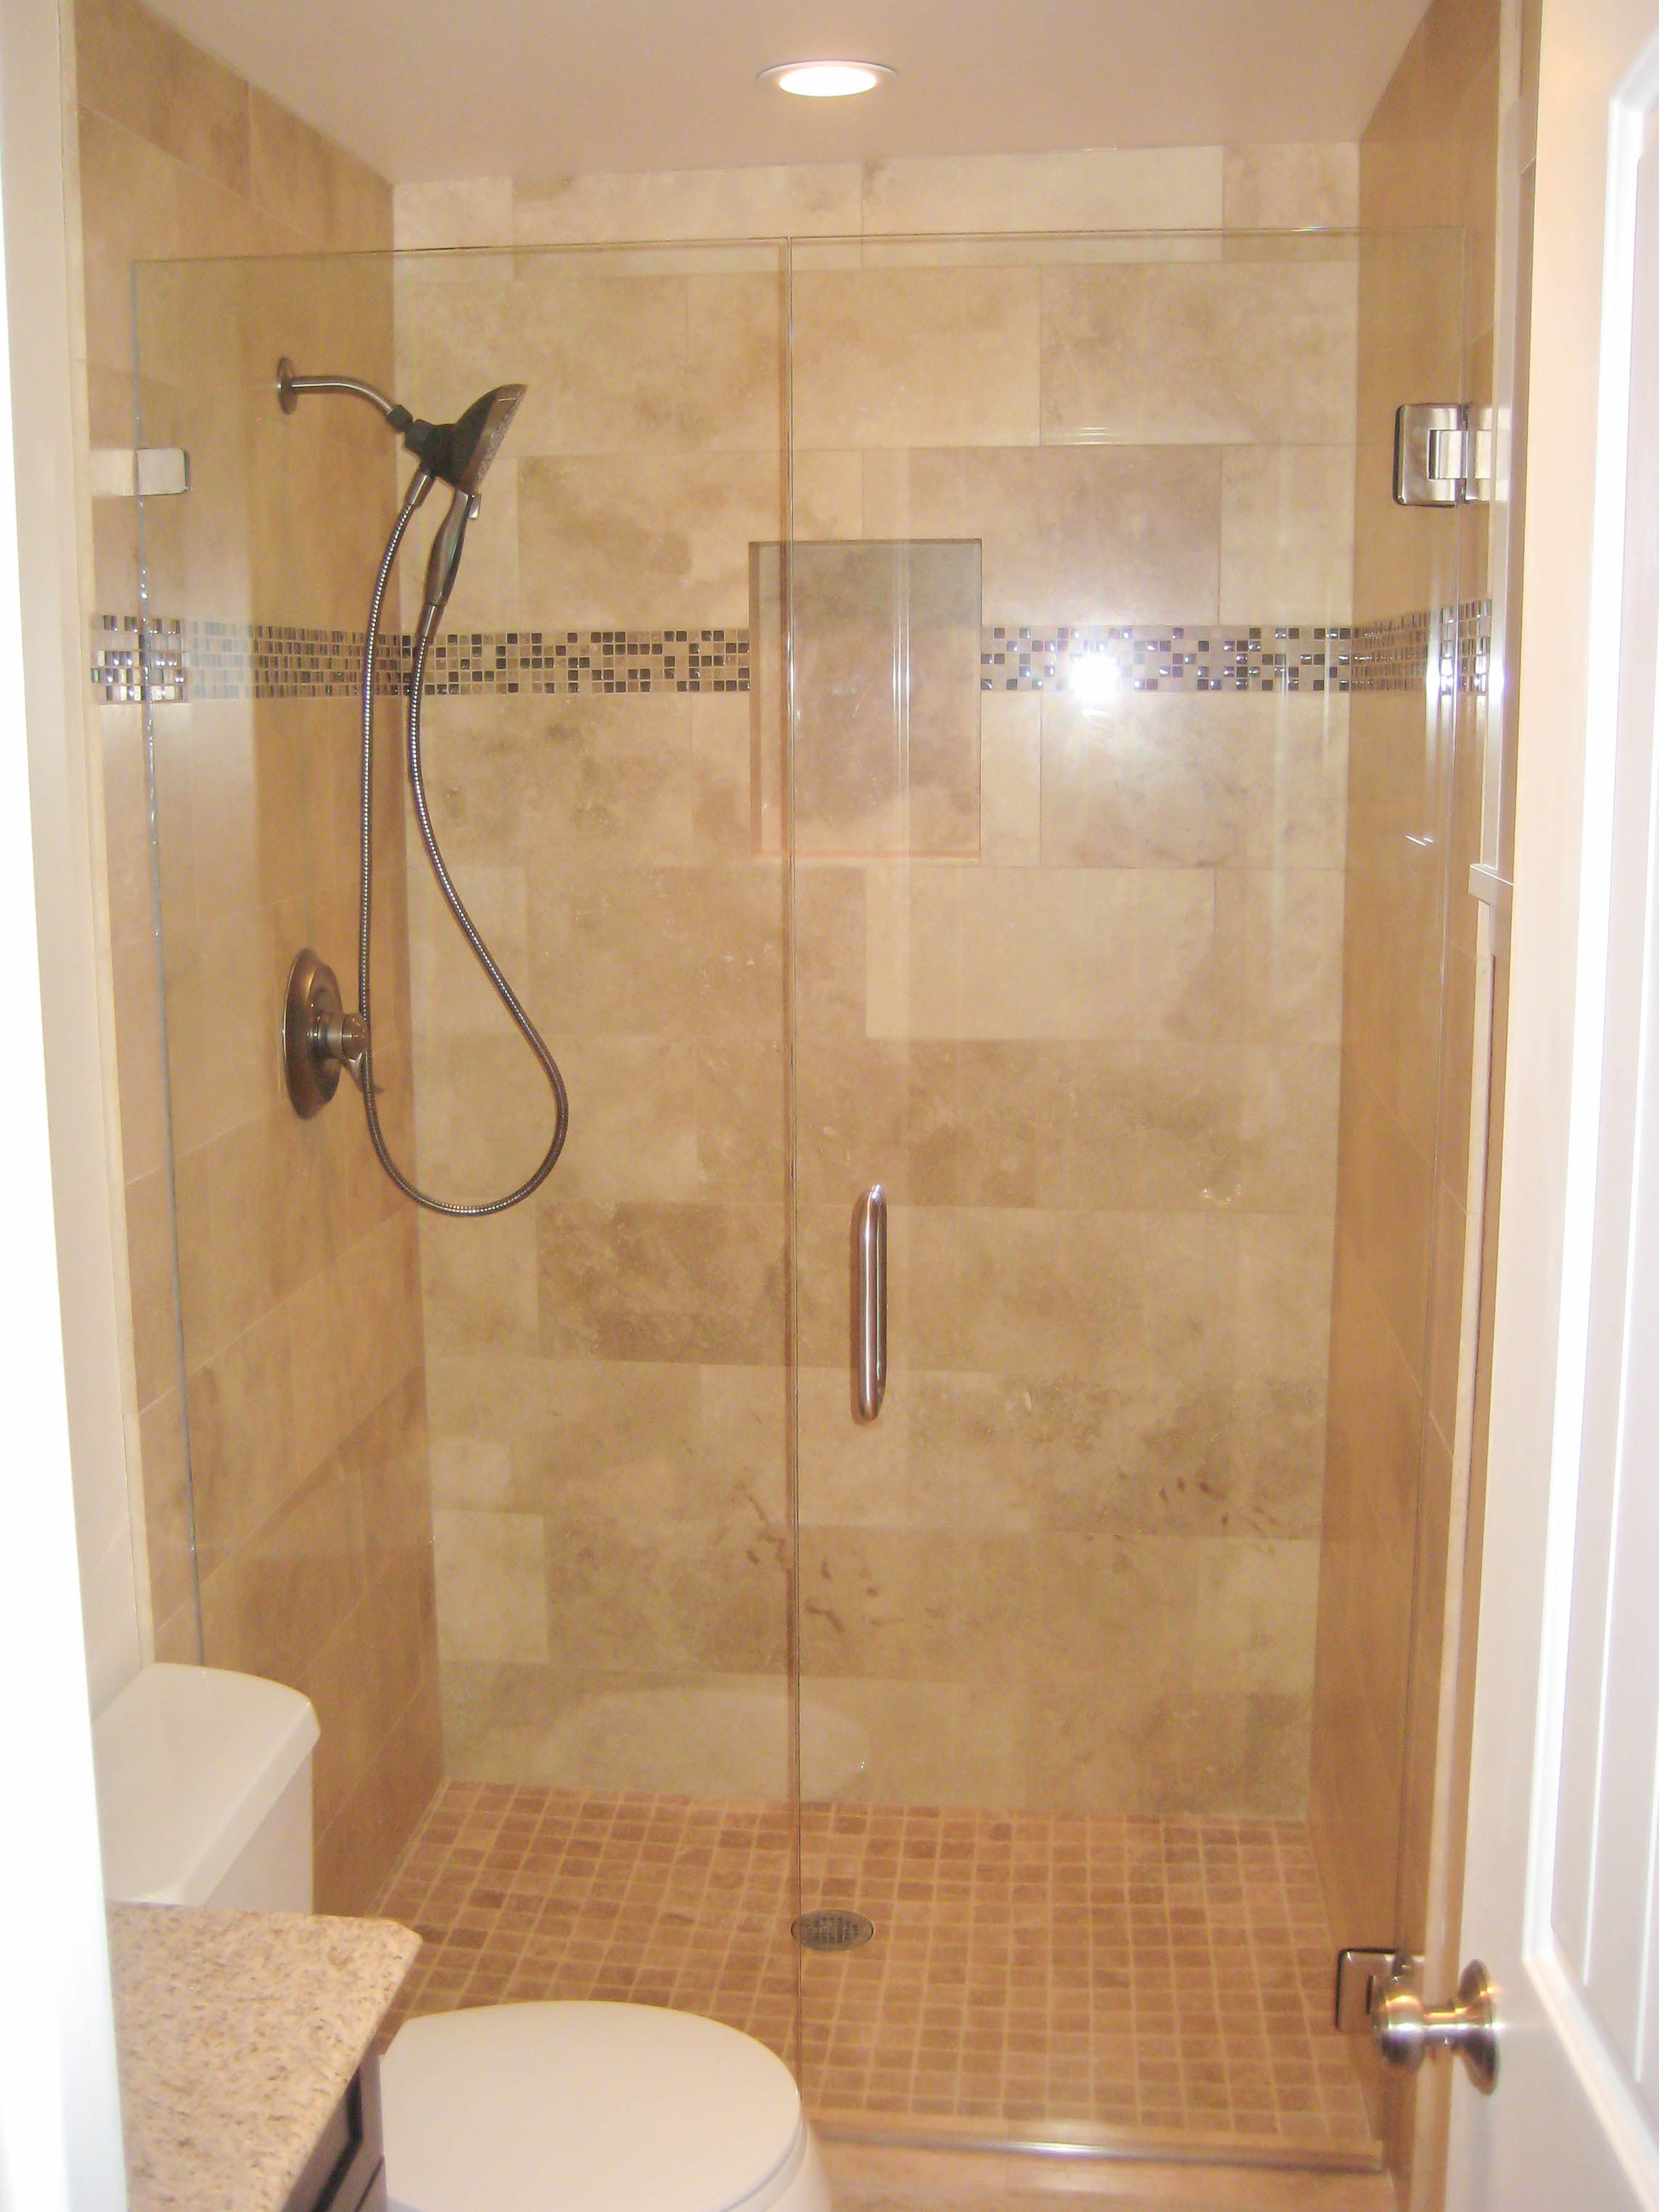 Bathroom Showers Bathroom Showers Photos  Seattle Tile Contractor  Irc Tile Services